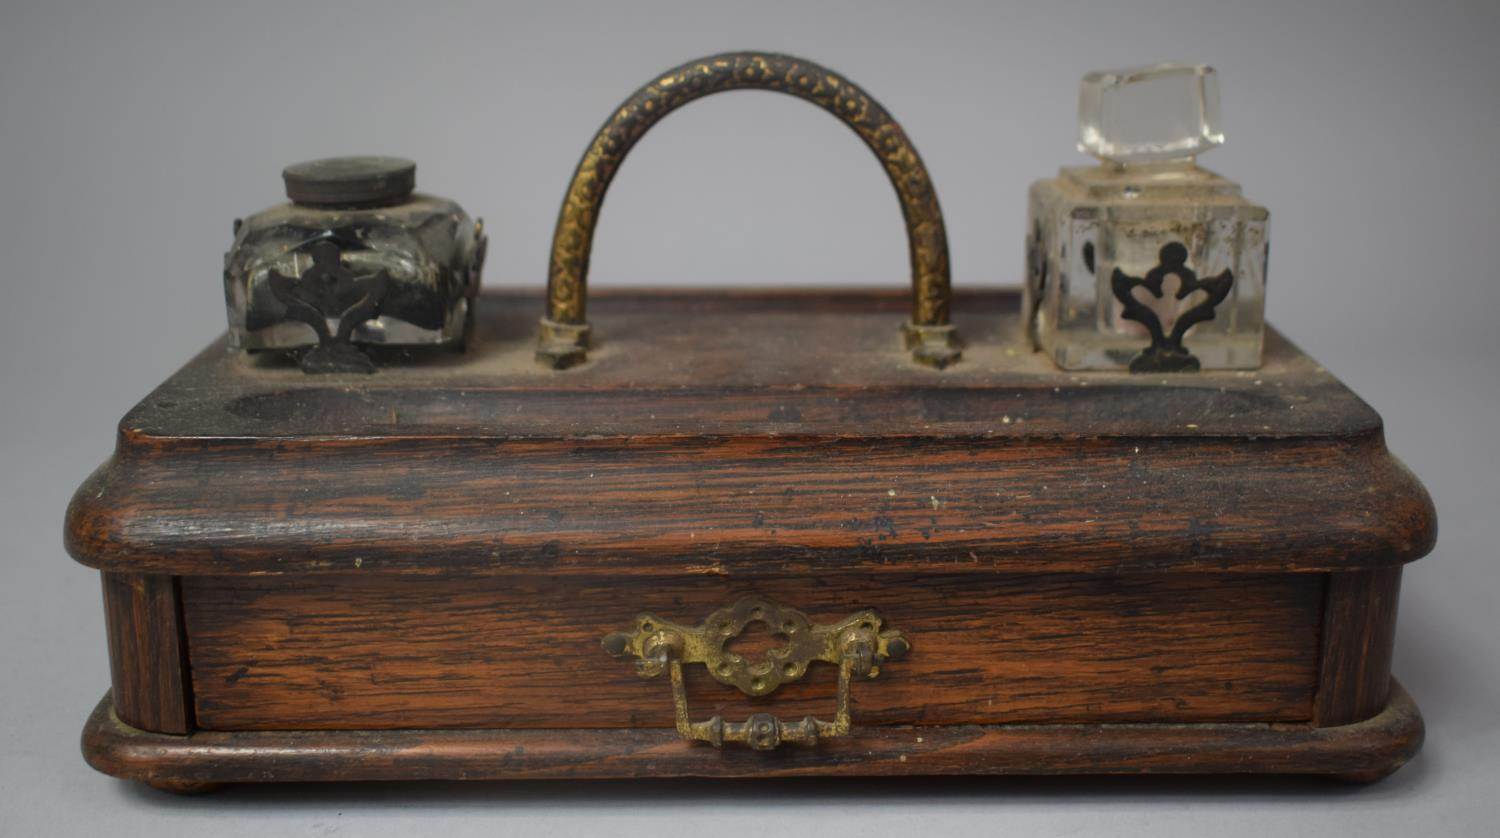 A Late Victorian Desktop Penrest and Inkstand with Two Ink Bottles and Base Drawer, 25cm Wide